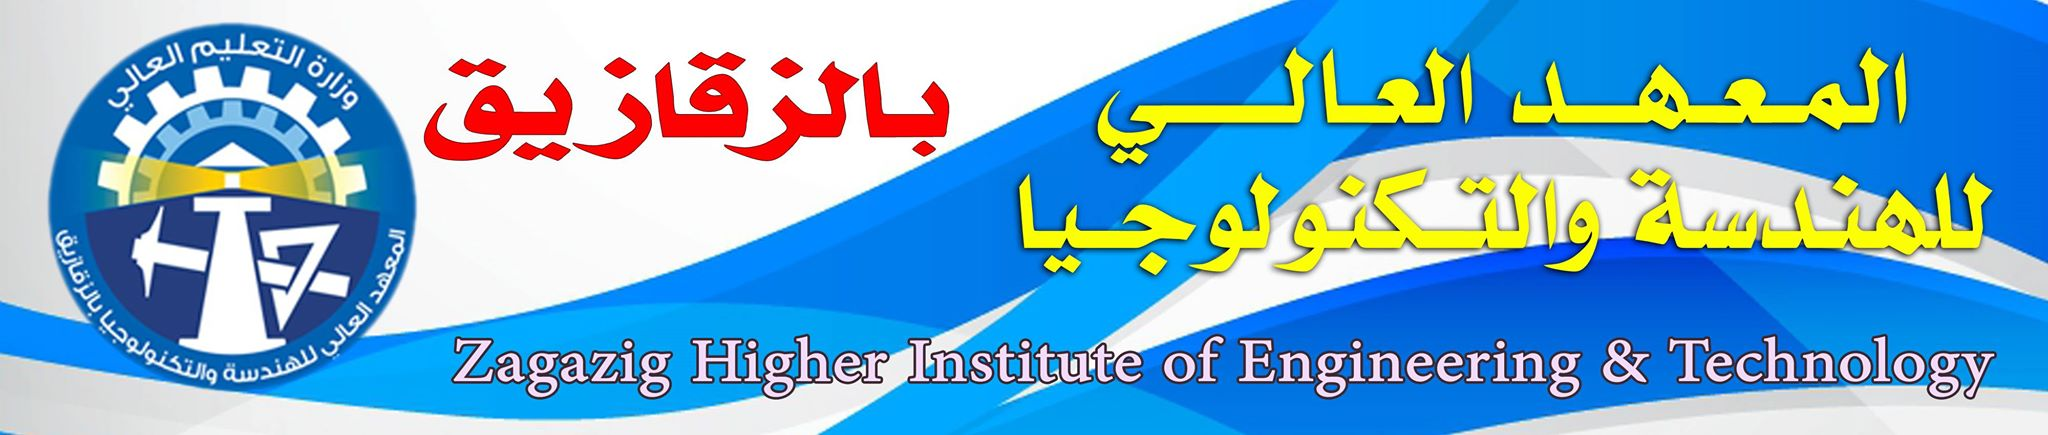 Zagazig higher institute engineering tecnology